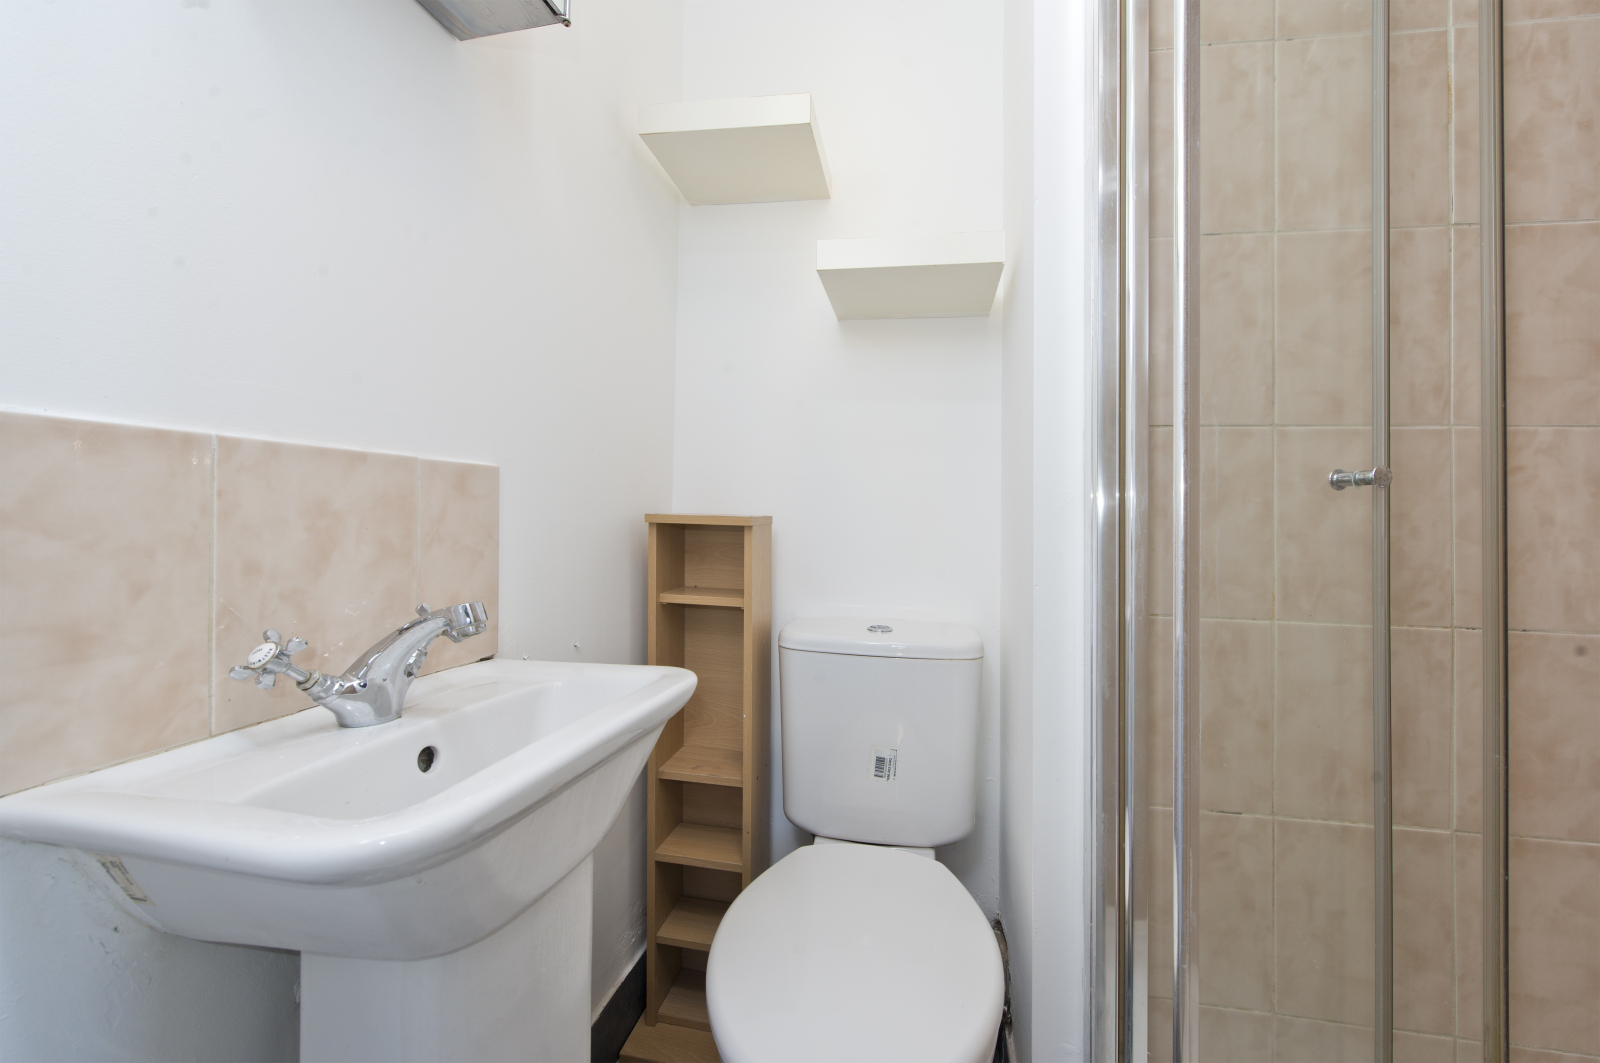 Studio flat to rent in Dalling road, Hammersmith, London 3